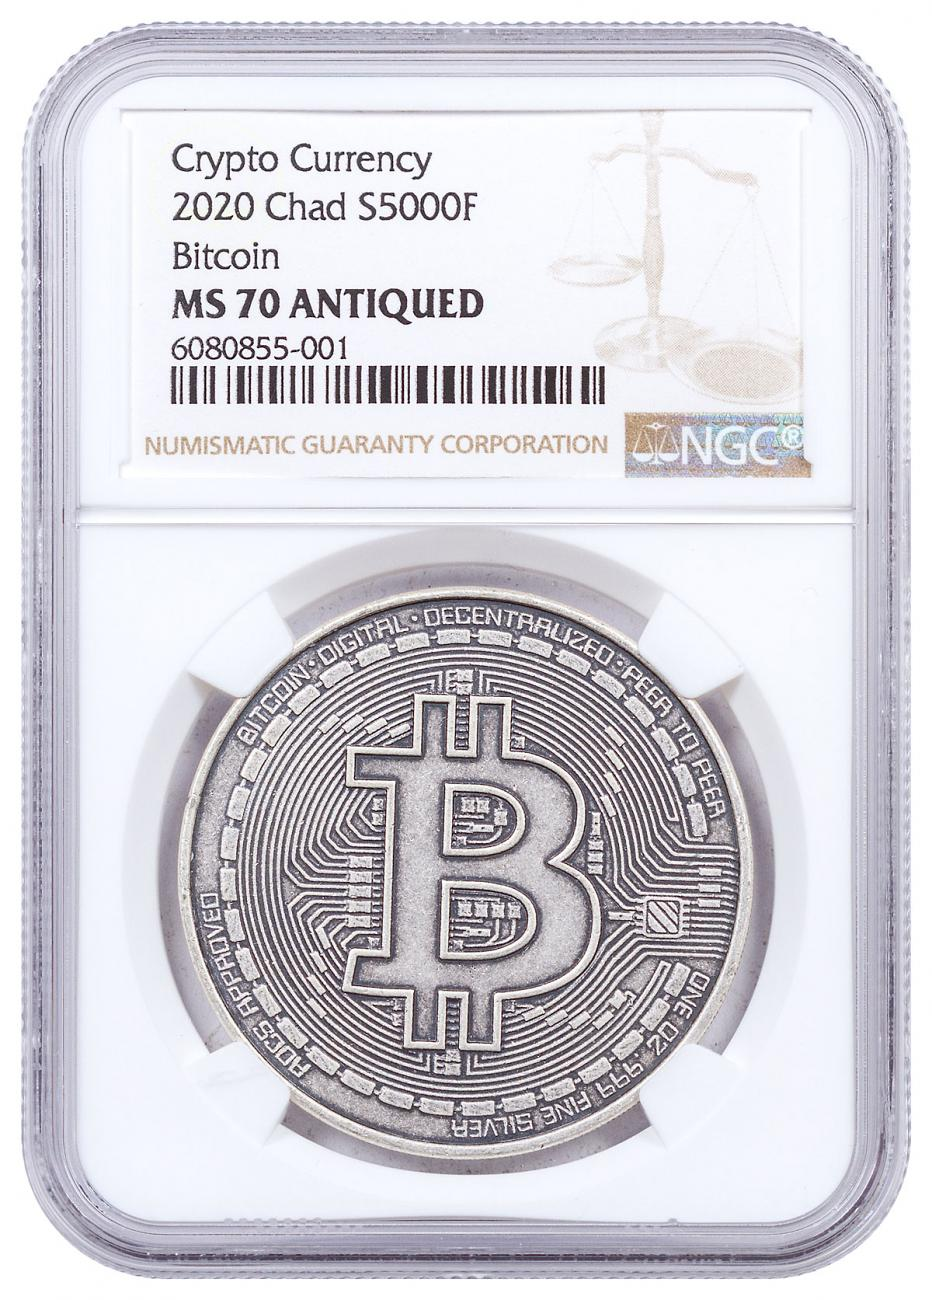 2020 Republic of Chad Fr5,000 1 oz Silver BitCoin Crypto Currency Antiqued Coin NGC MS70